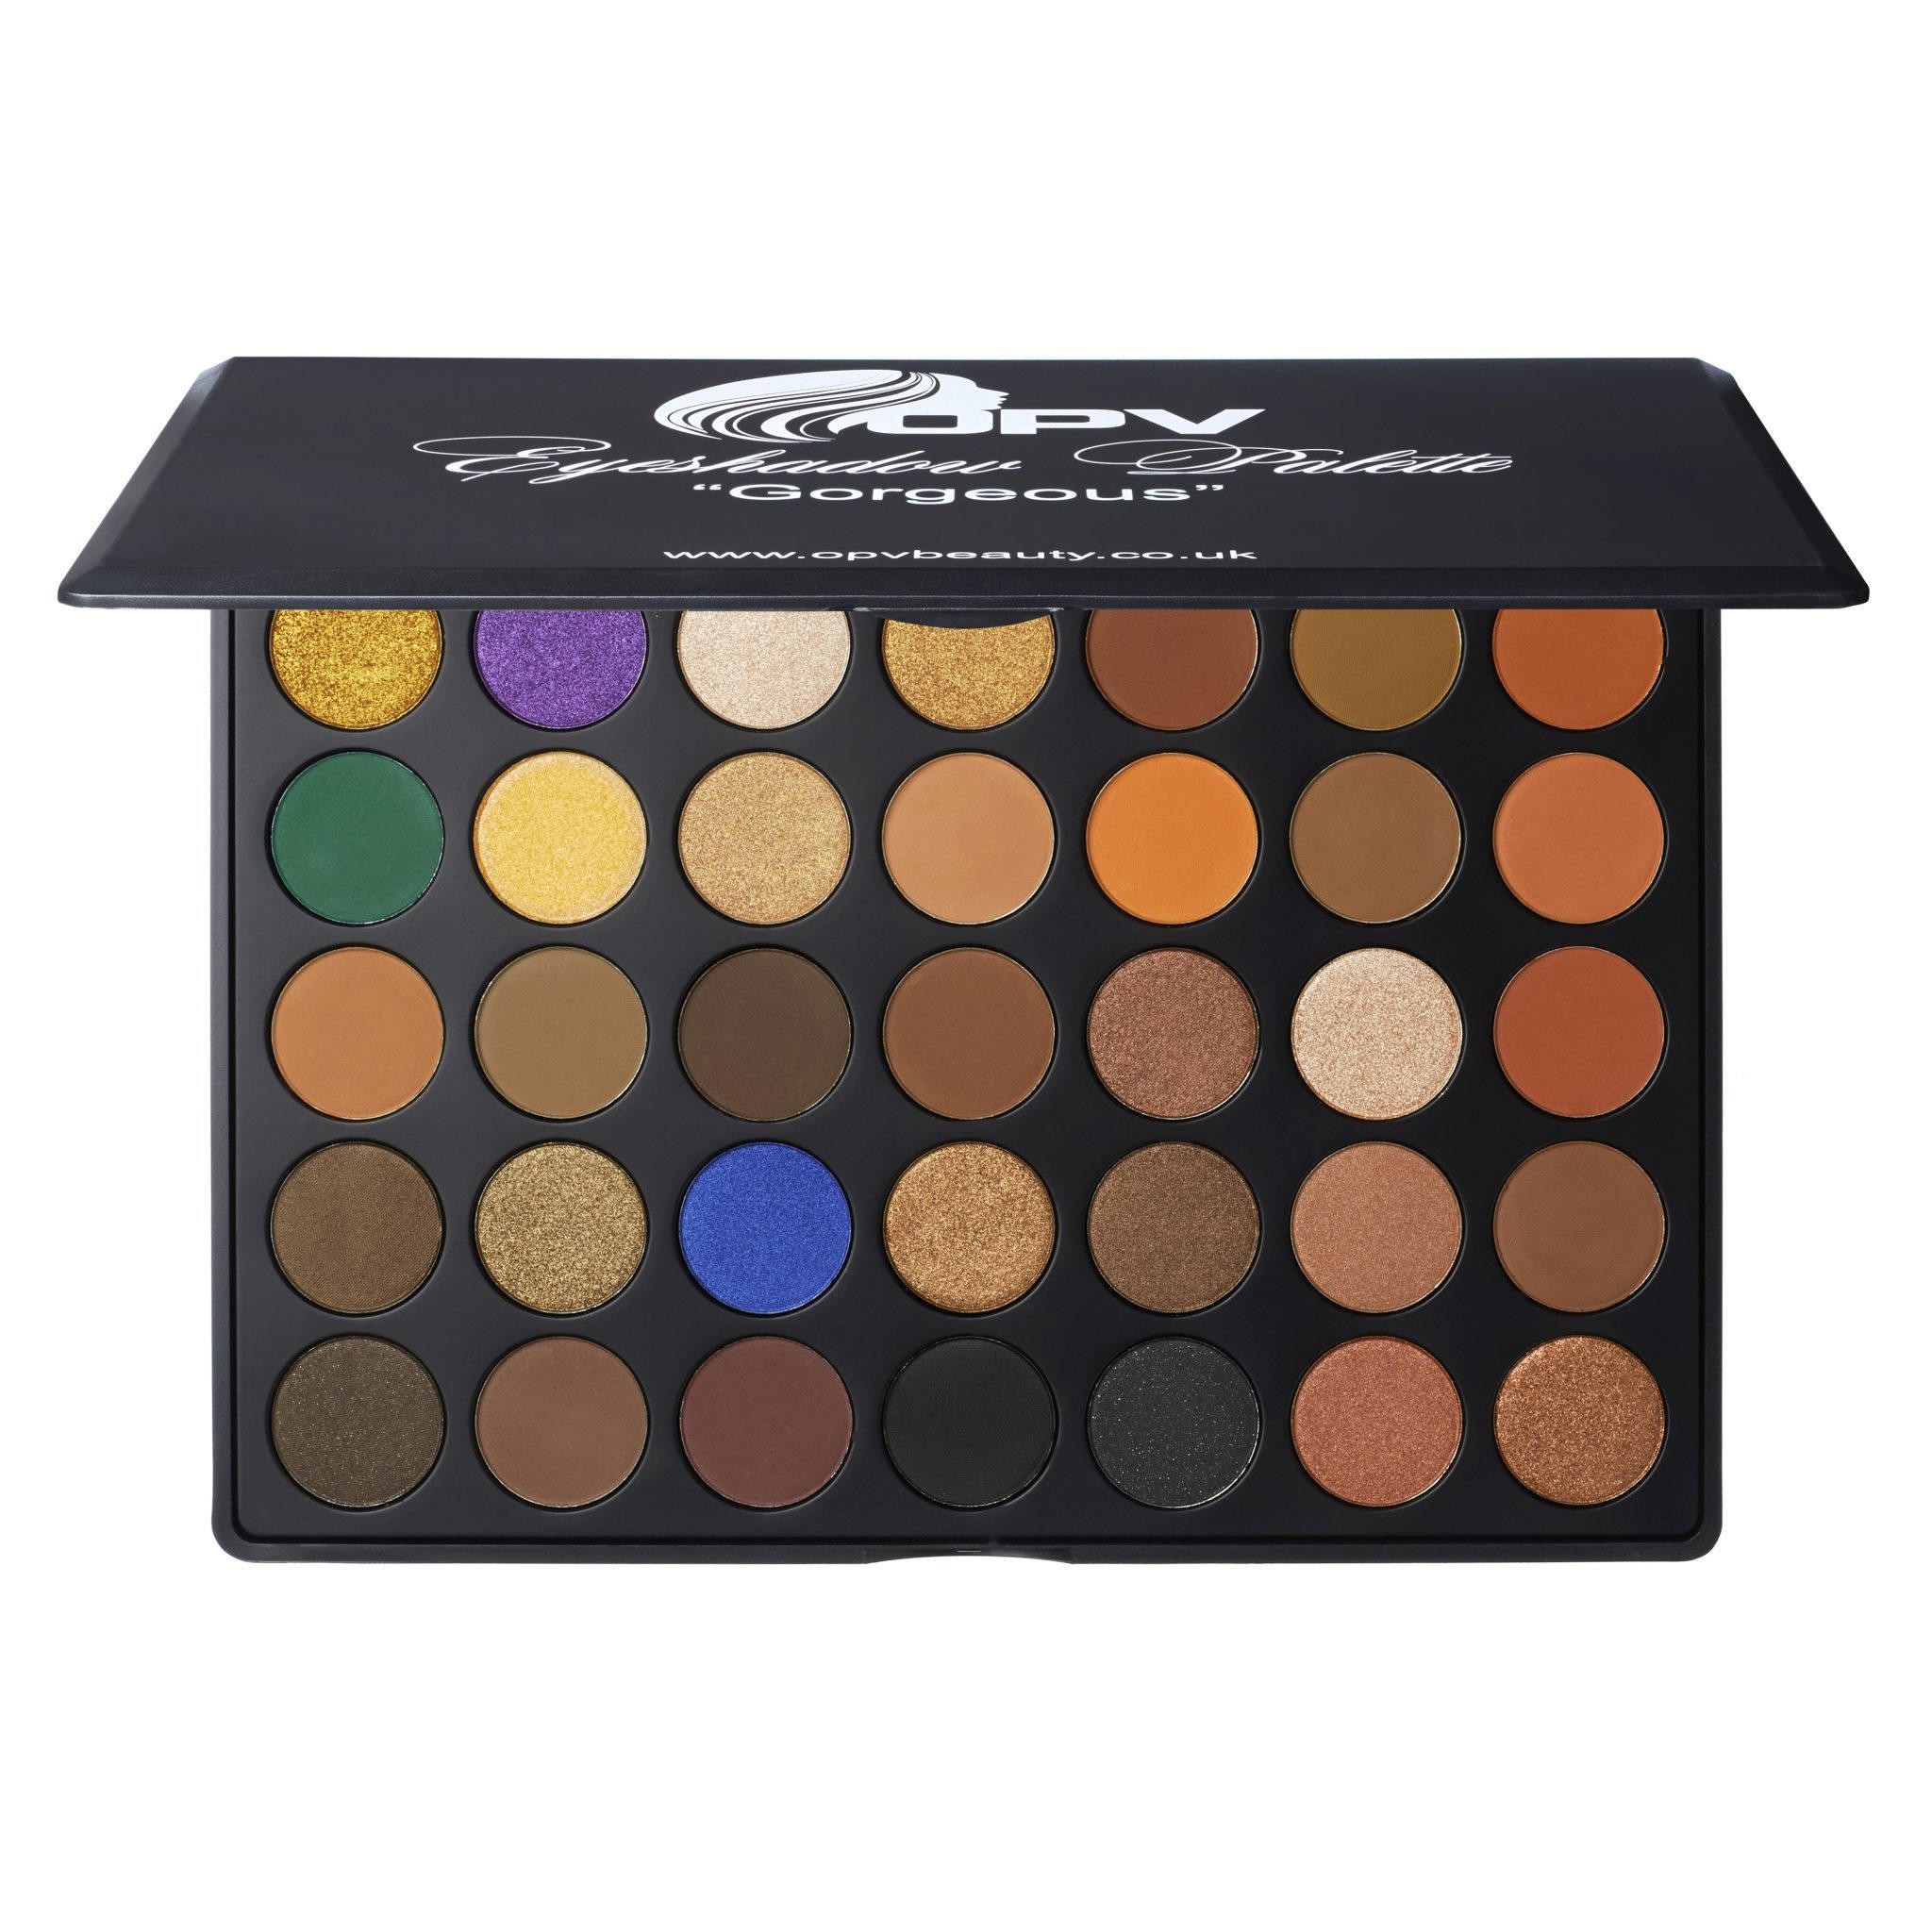 OPV Beauty 35 Color Eyeshadow Palette Gorgeous